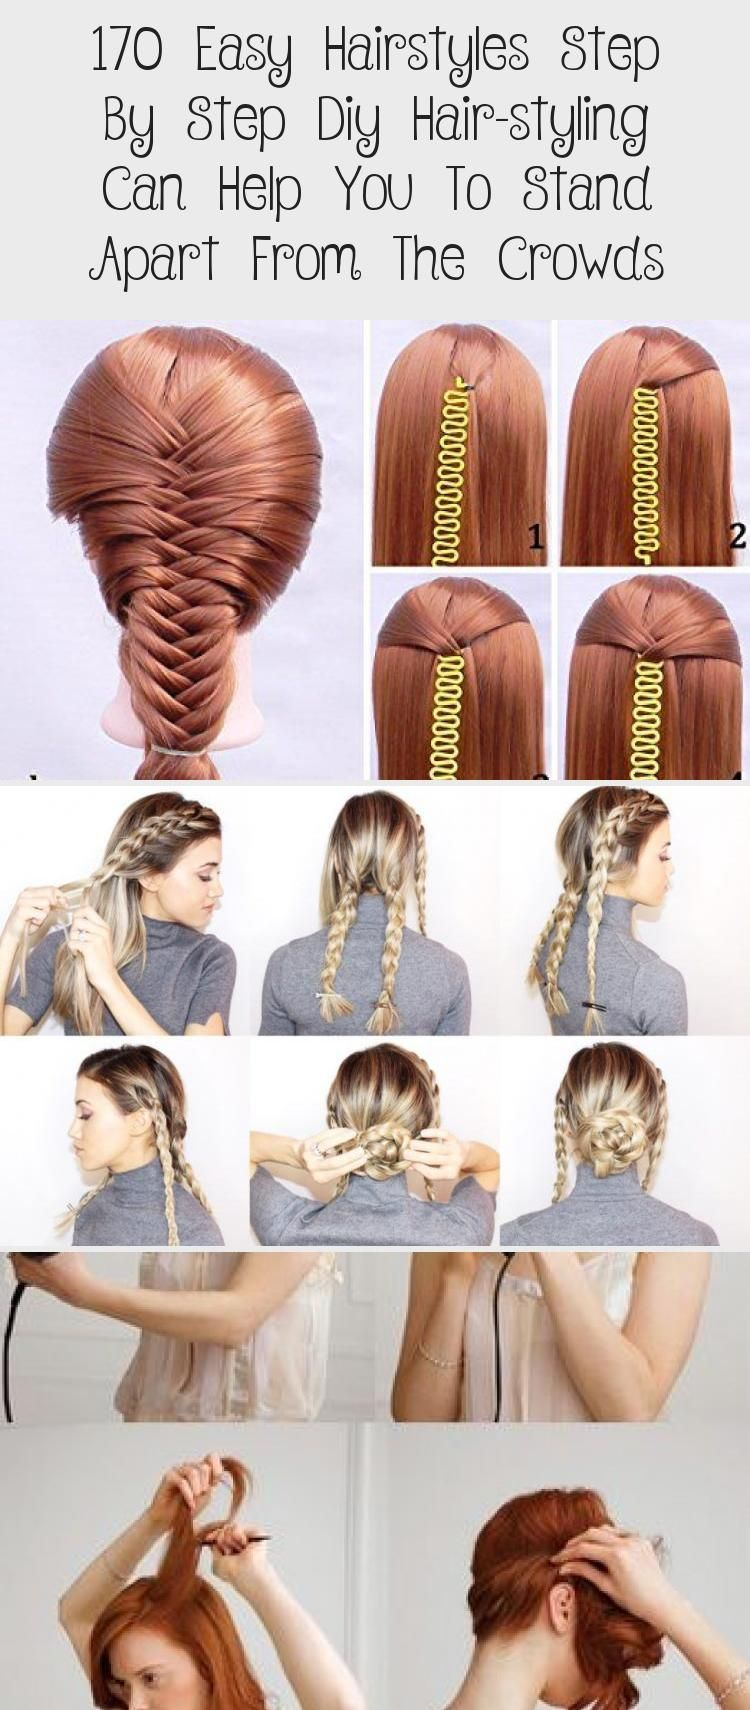 170 Easy Hairstyles Step By Step Diy Hair Styling Can Help You To Stand Apart From The Crowds Page 83 My Beauty In 2020 Hair Styles Diy Hairstyles Easy Hairstyles